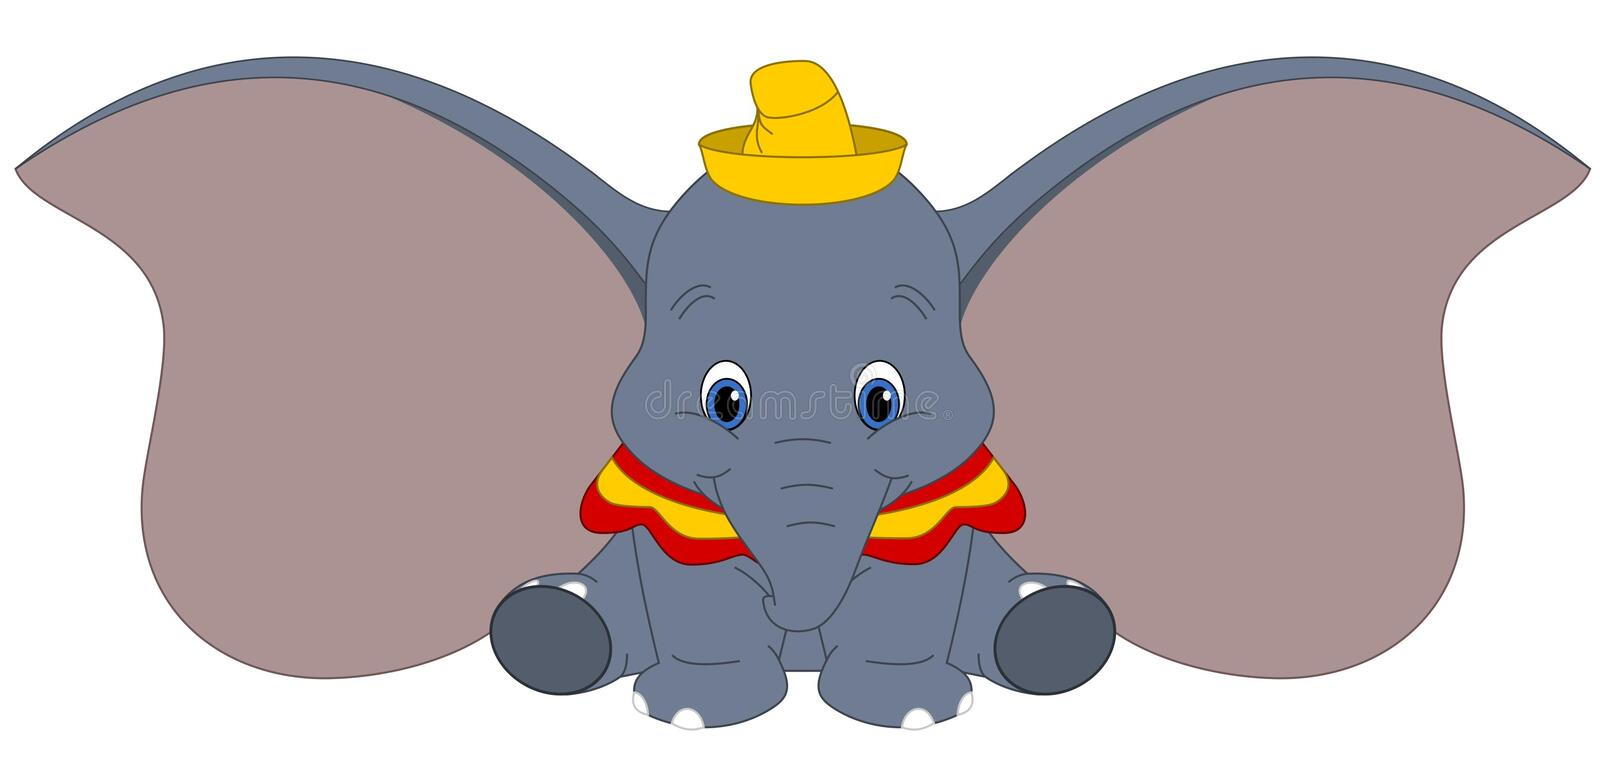 Disney vector illustration of Dumbo isolated on white background, baby elephant with big ears, fantasy cartoon character vector illustration